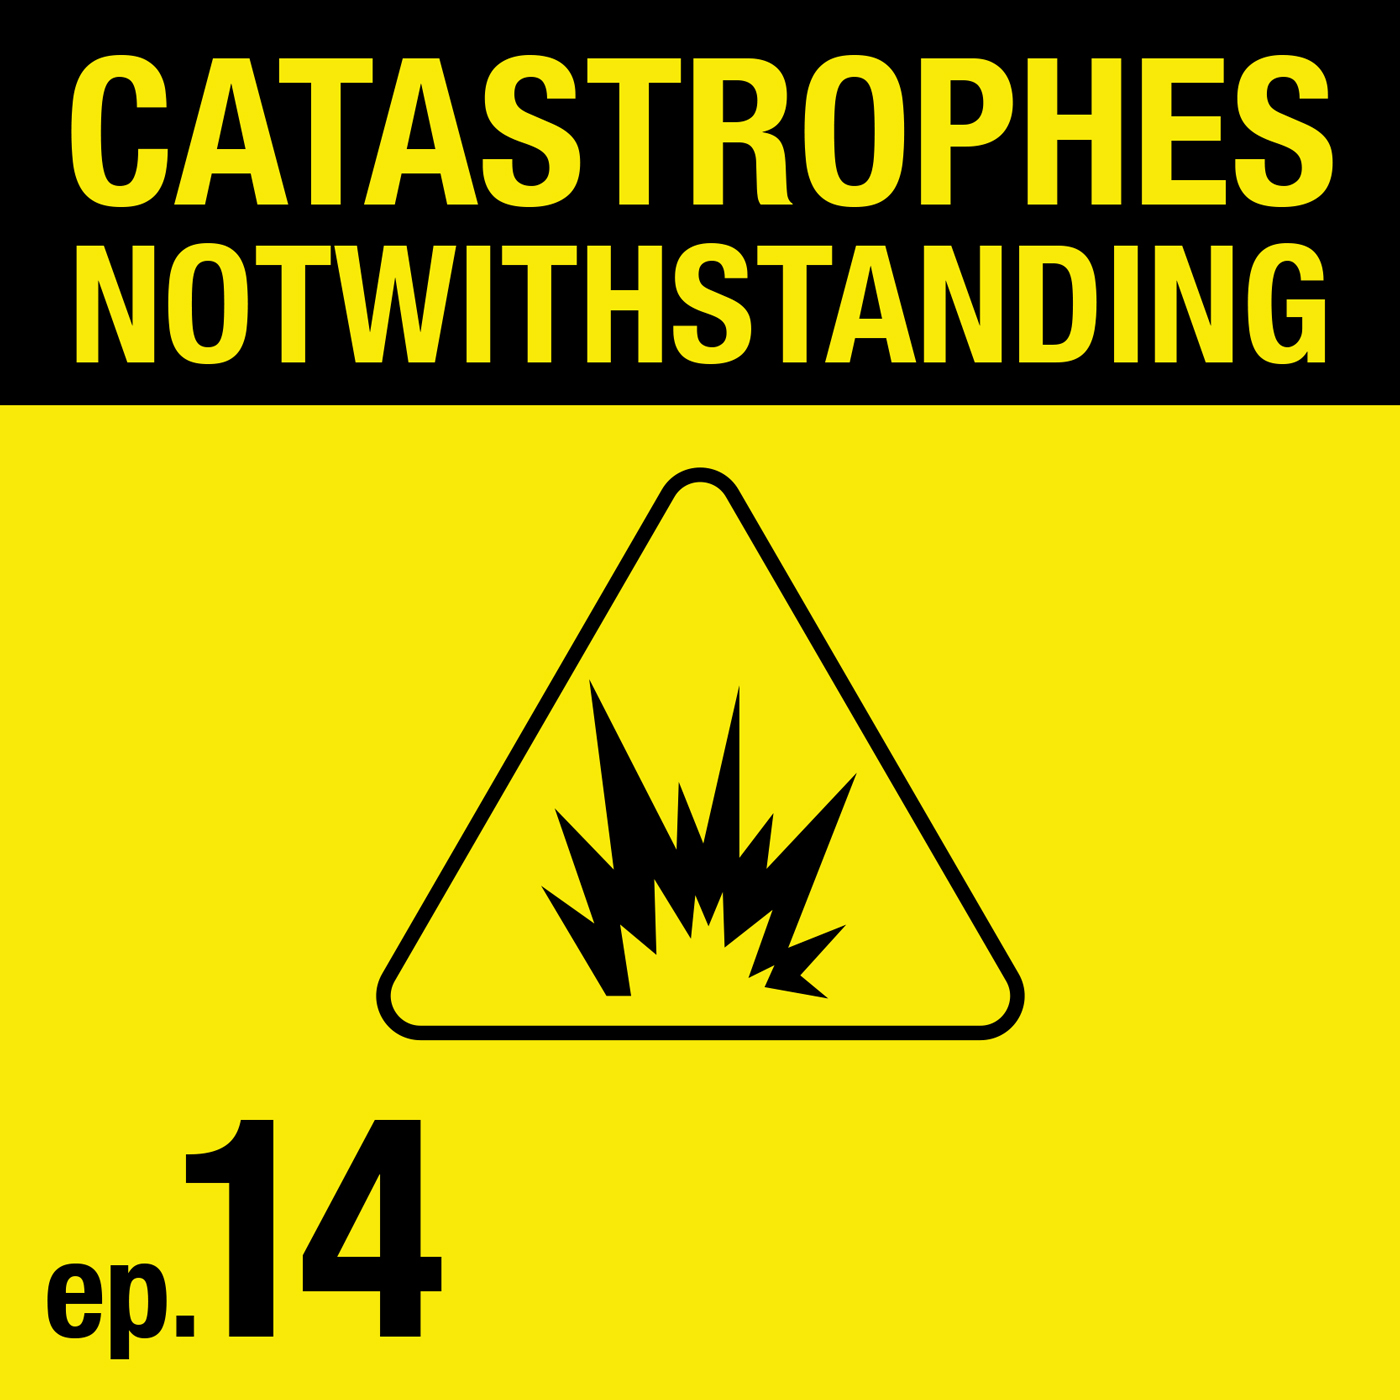 Cover Image of Catastrophes Notwithstanding Episode 14